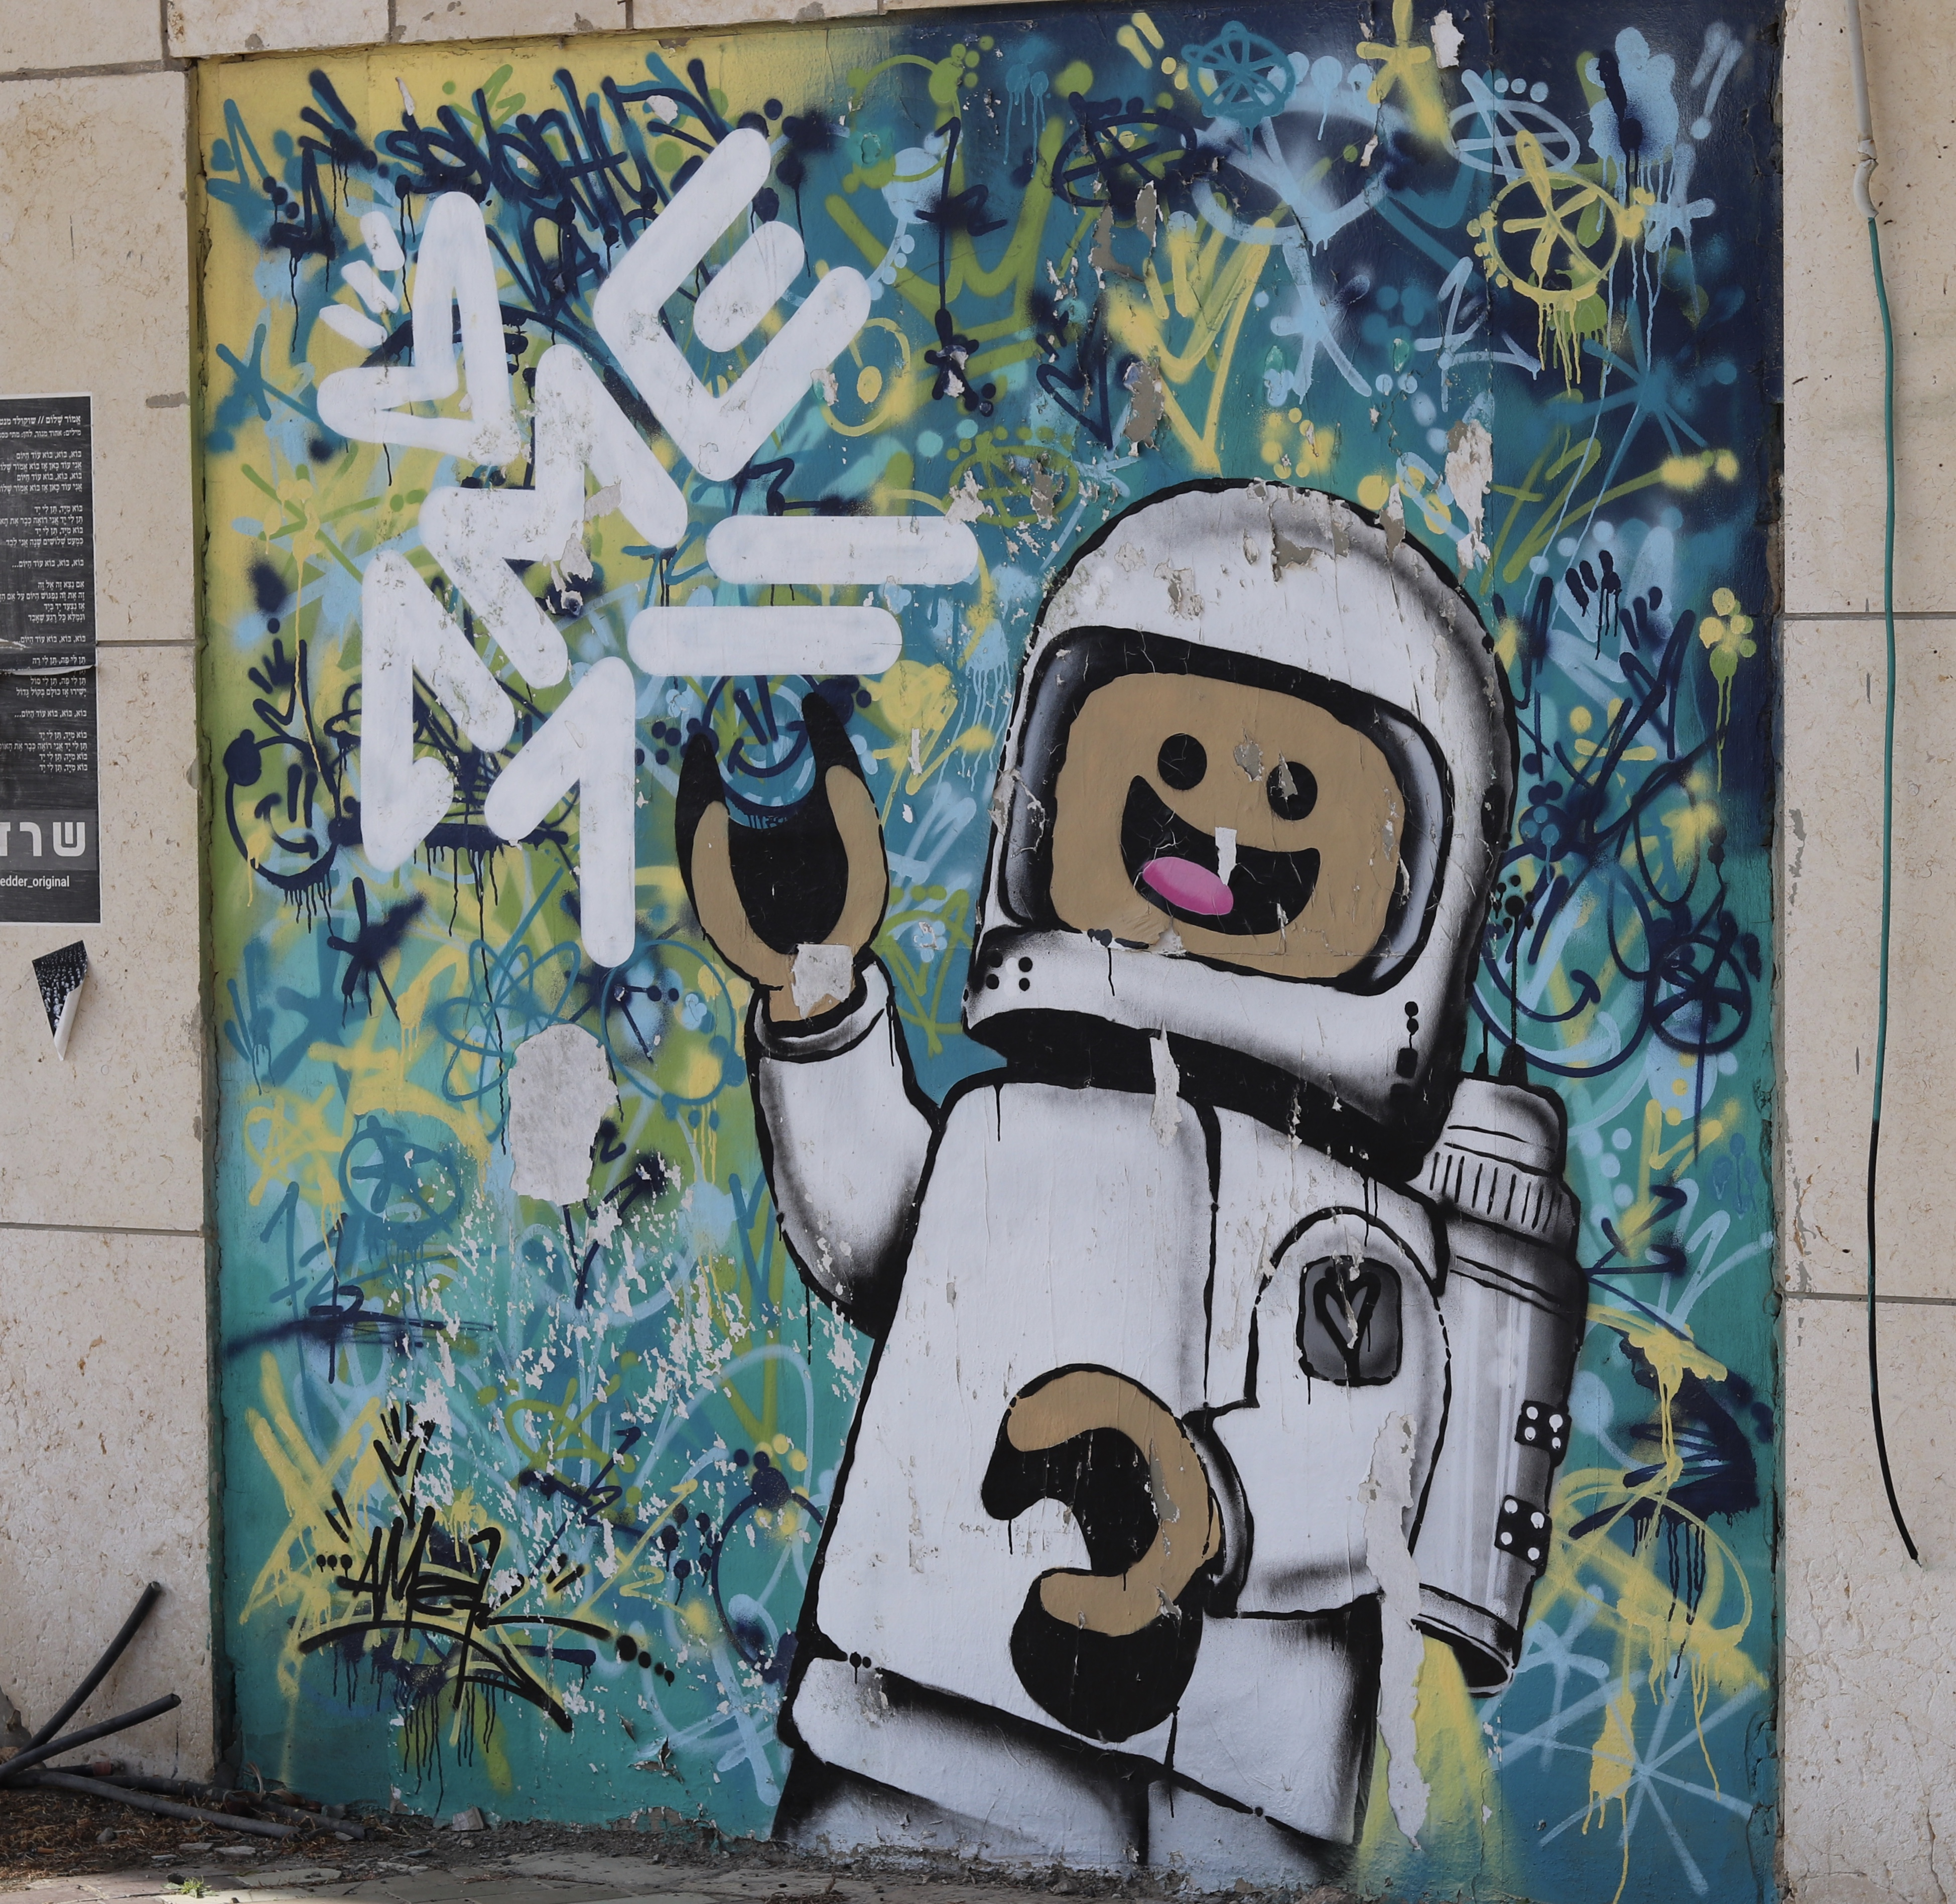 Lego themed Street art in Tel Aviv